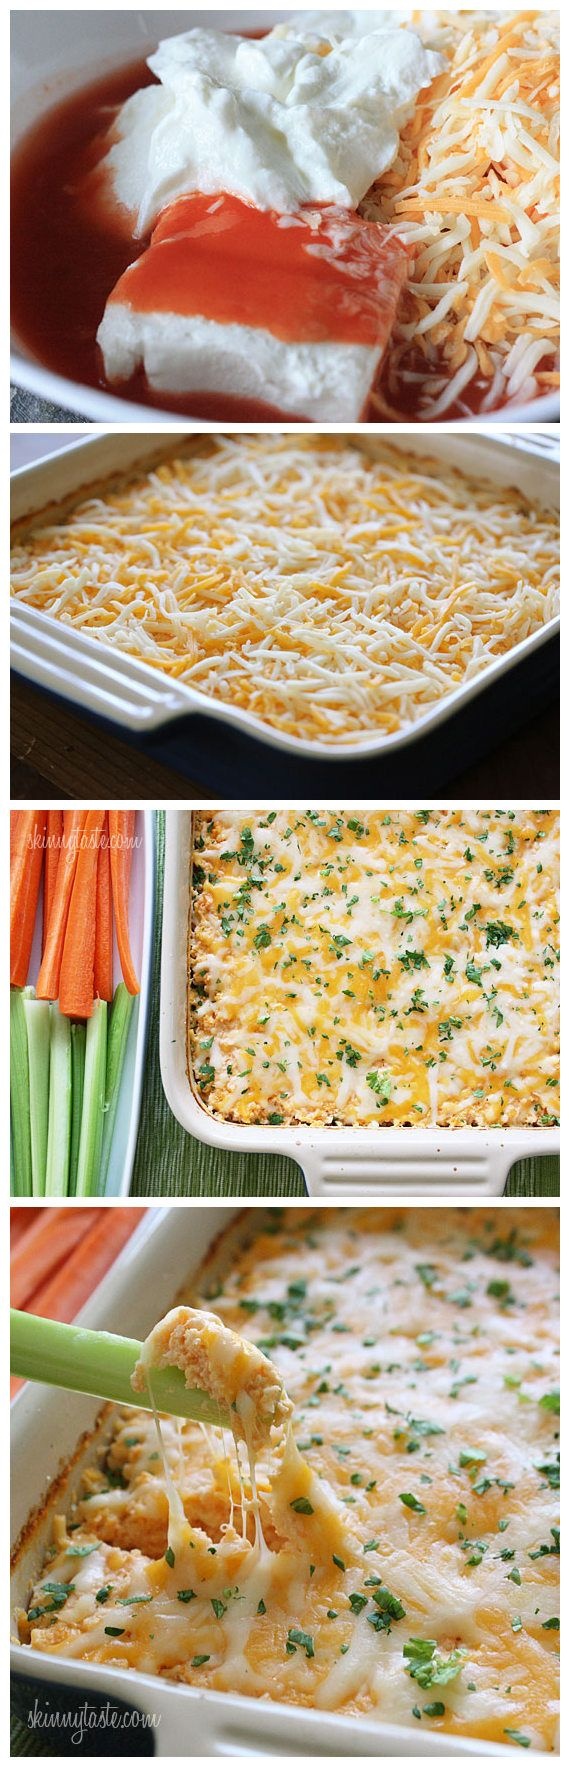 Hot and Spicy Buffalo Shrimp Dip | appetizers | Pinterest